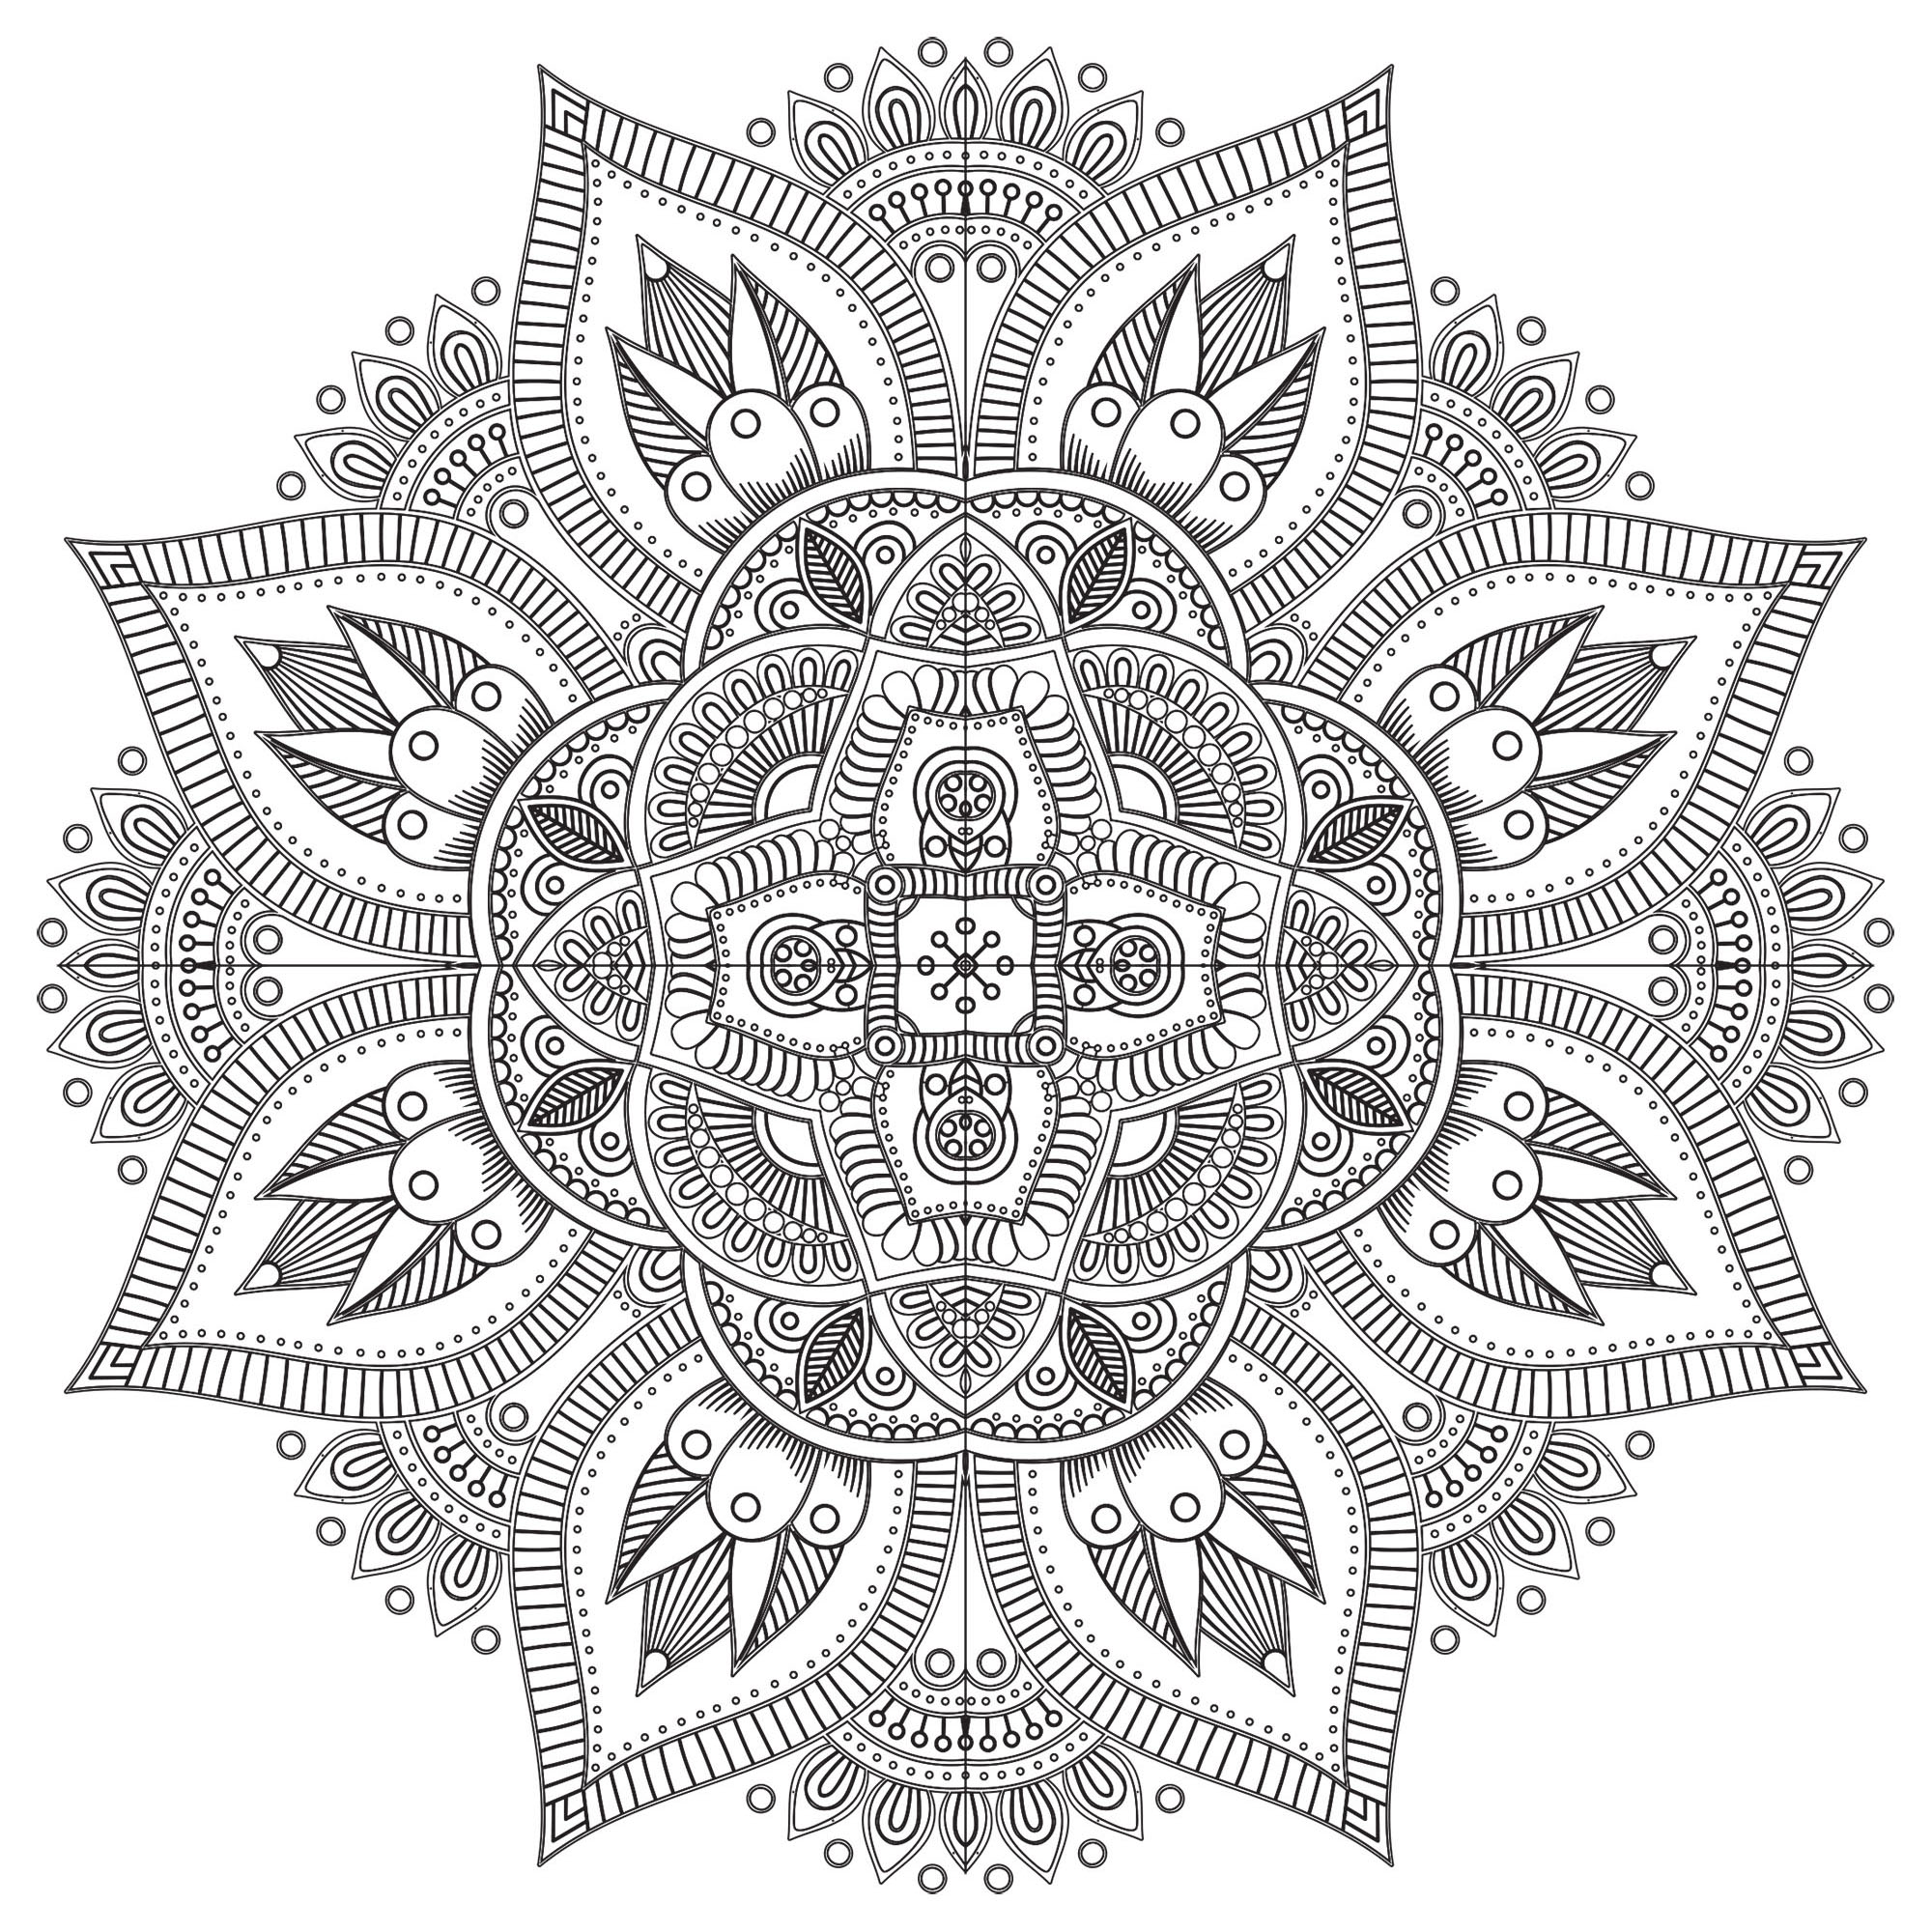 Zen & Anti-Stress Mandala - 8